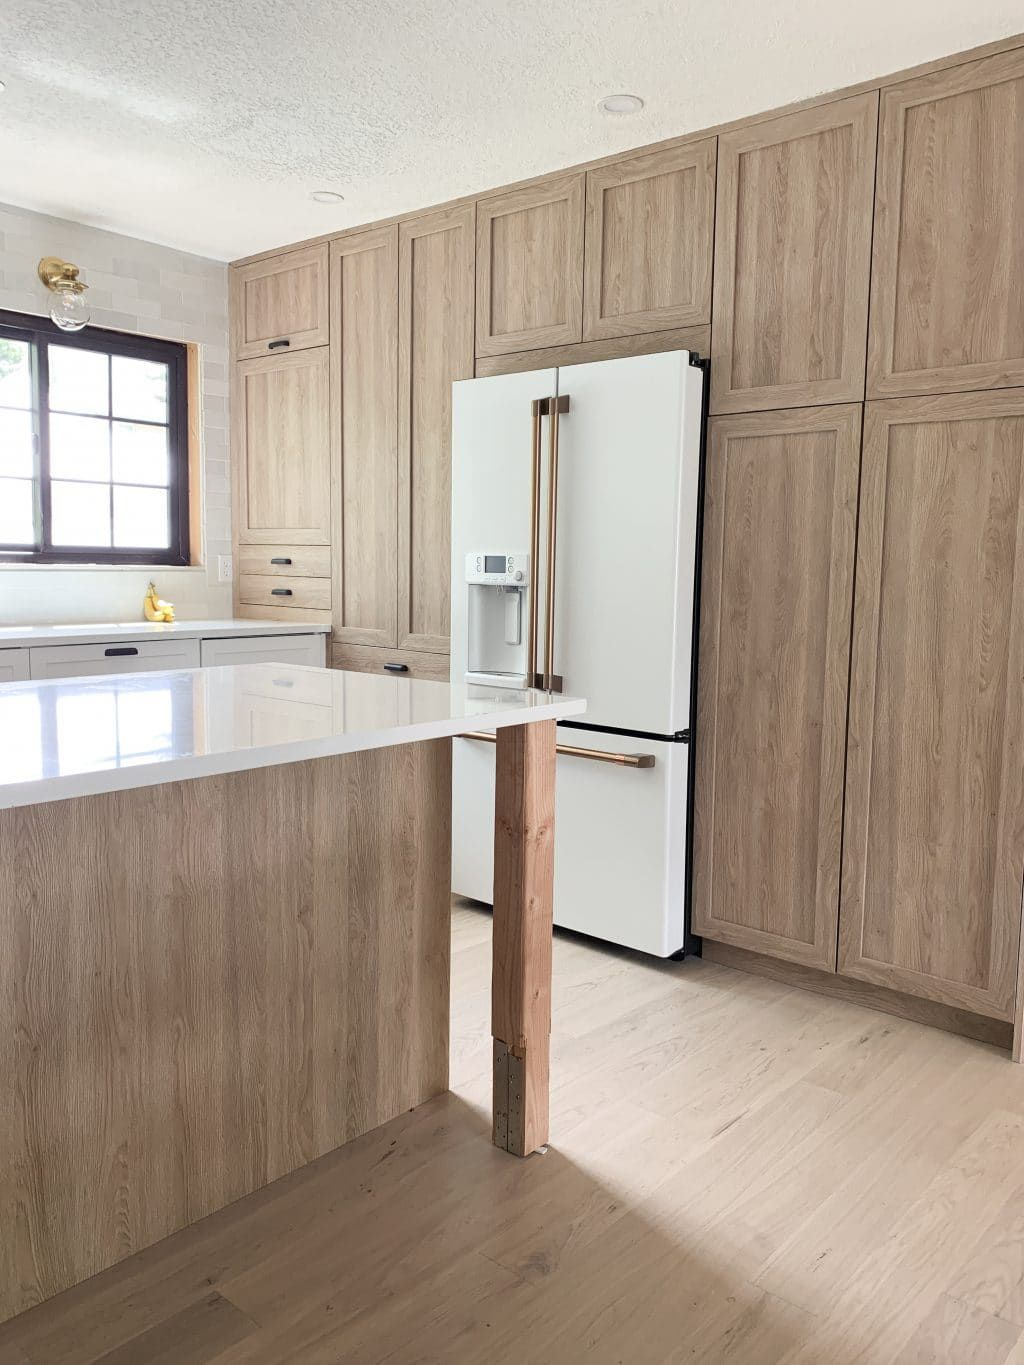 Everything You Need To Know About Using Semihandmade Fronts With Ikea Cabinets And Our Cove Line In The Fullmer Kitchen Replacement Kitchen Doors Kitchen Cabinets Fronts Ikea Cabinets